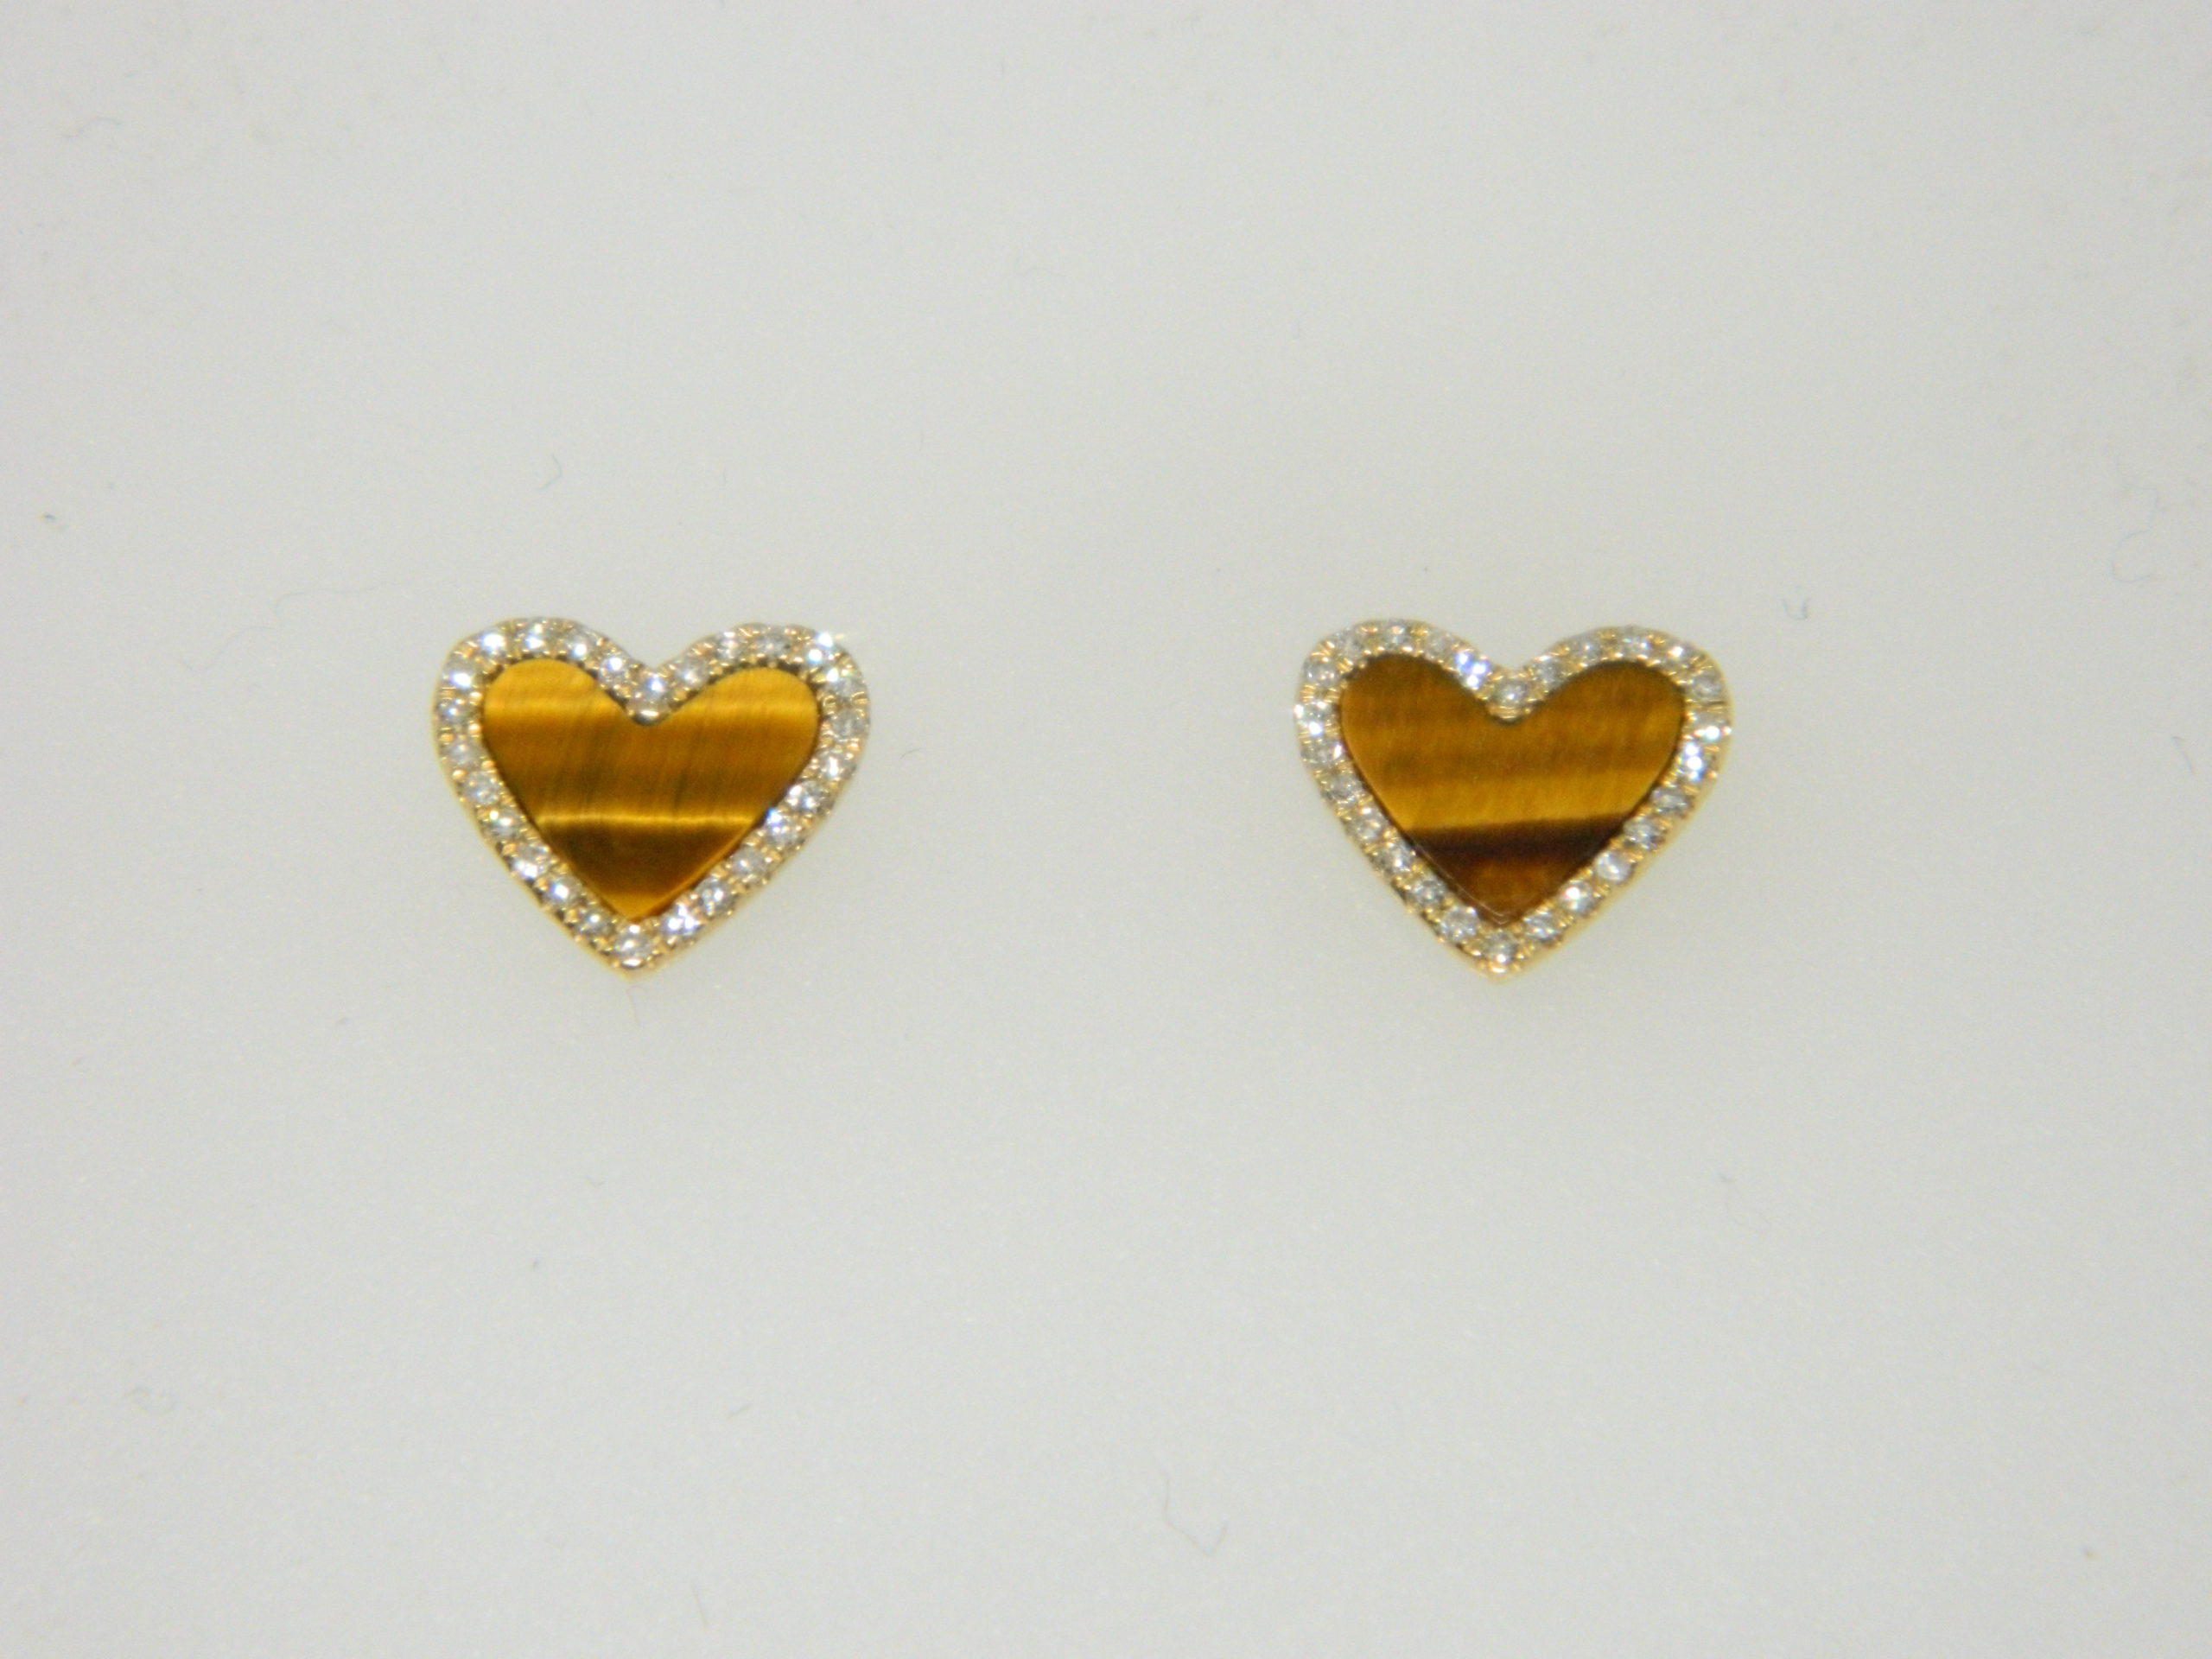 14 Karat Yellow Gold Stud Mounted Heart Earrings with 2 Tiger Eye weighing 0.82cts & 52 Round Cut Diamonds weighing 0.14cts